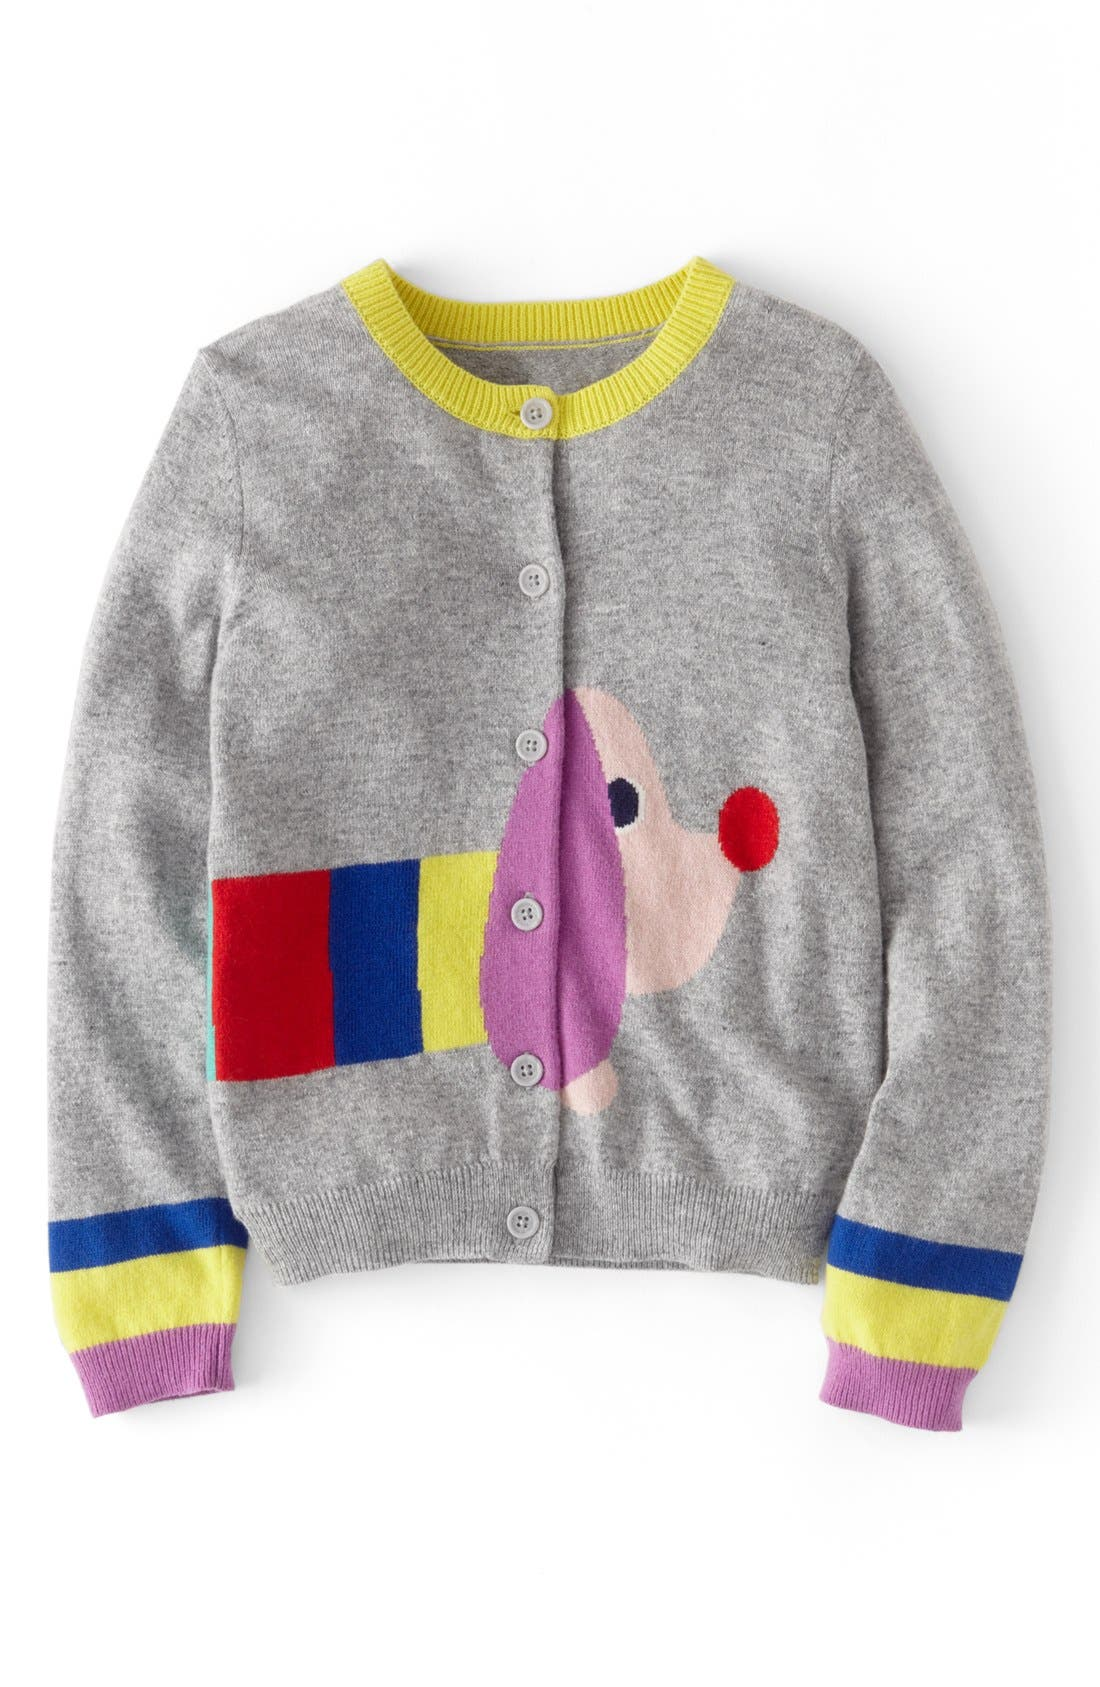 Main Image - Mini Boden 'Pet' Cardigan (Toddler Girls, Little Girls & Big Girls)